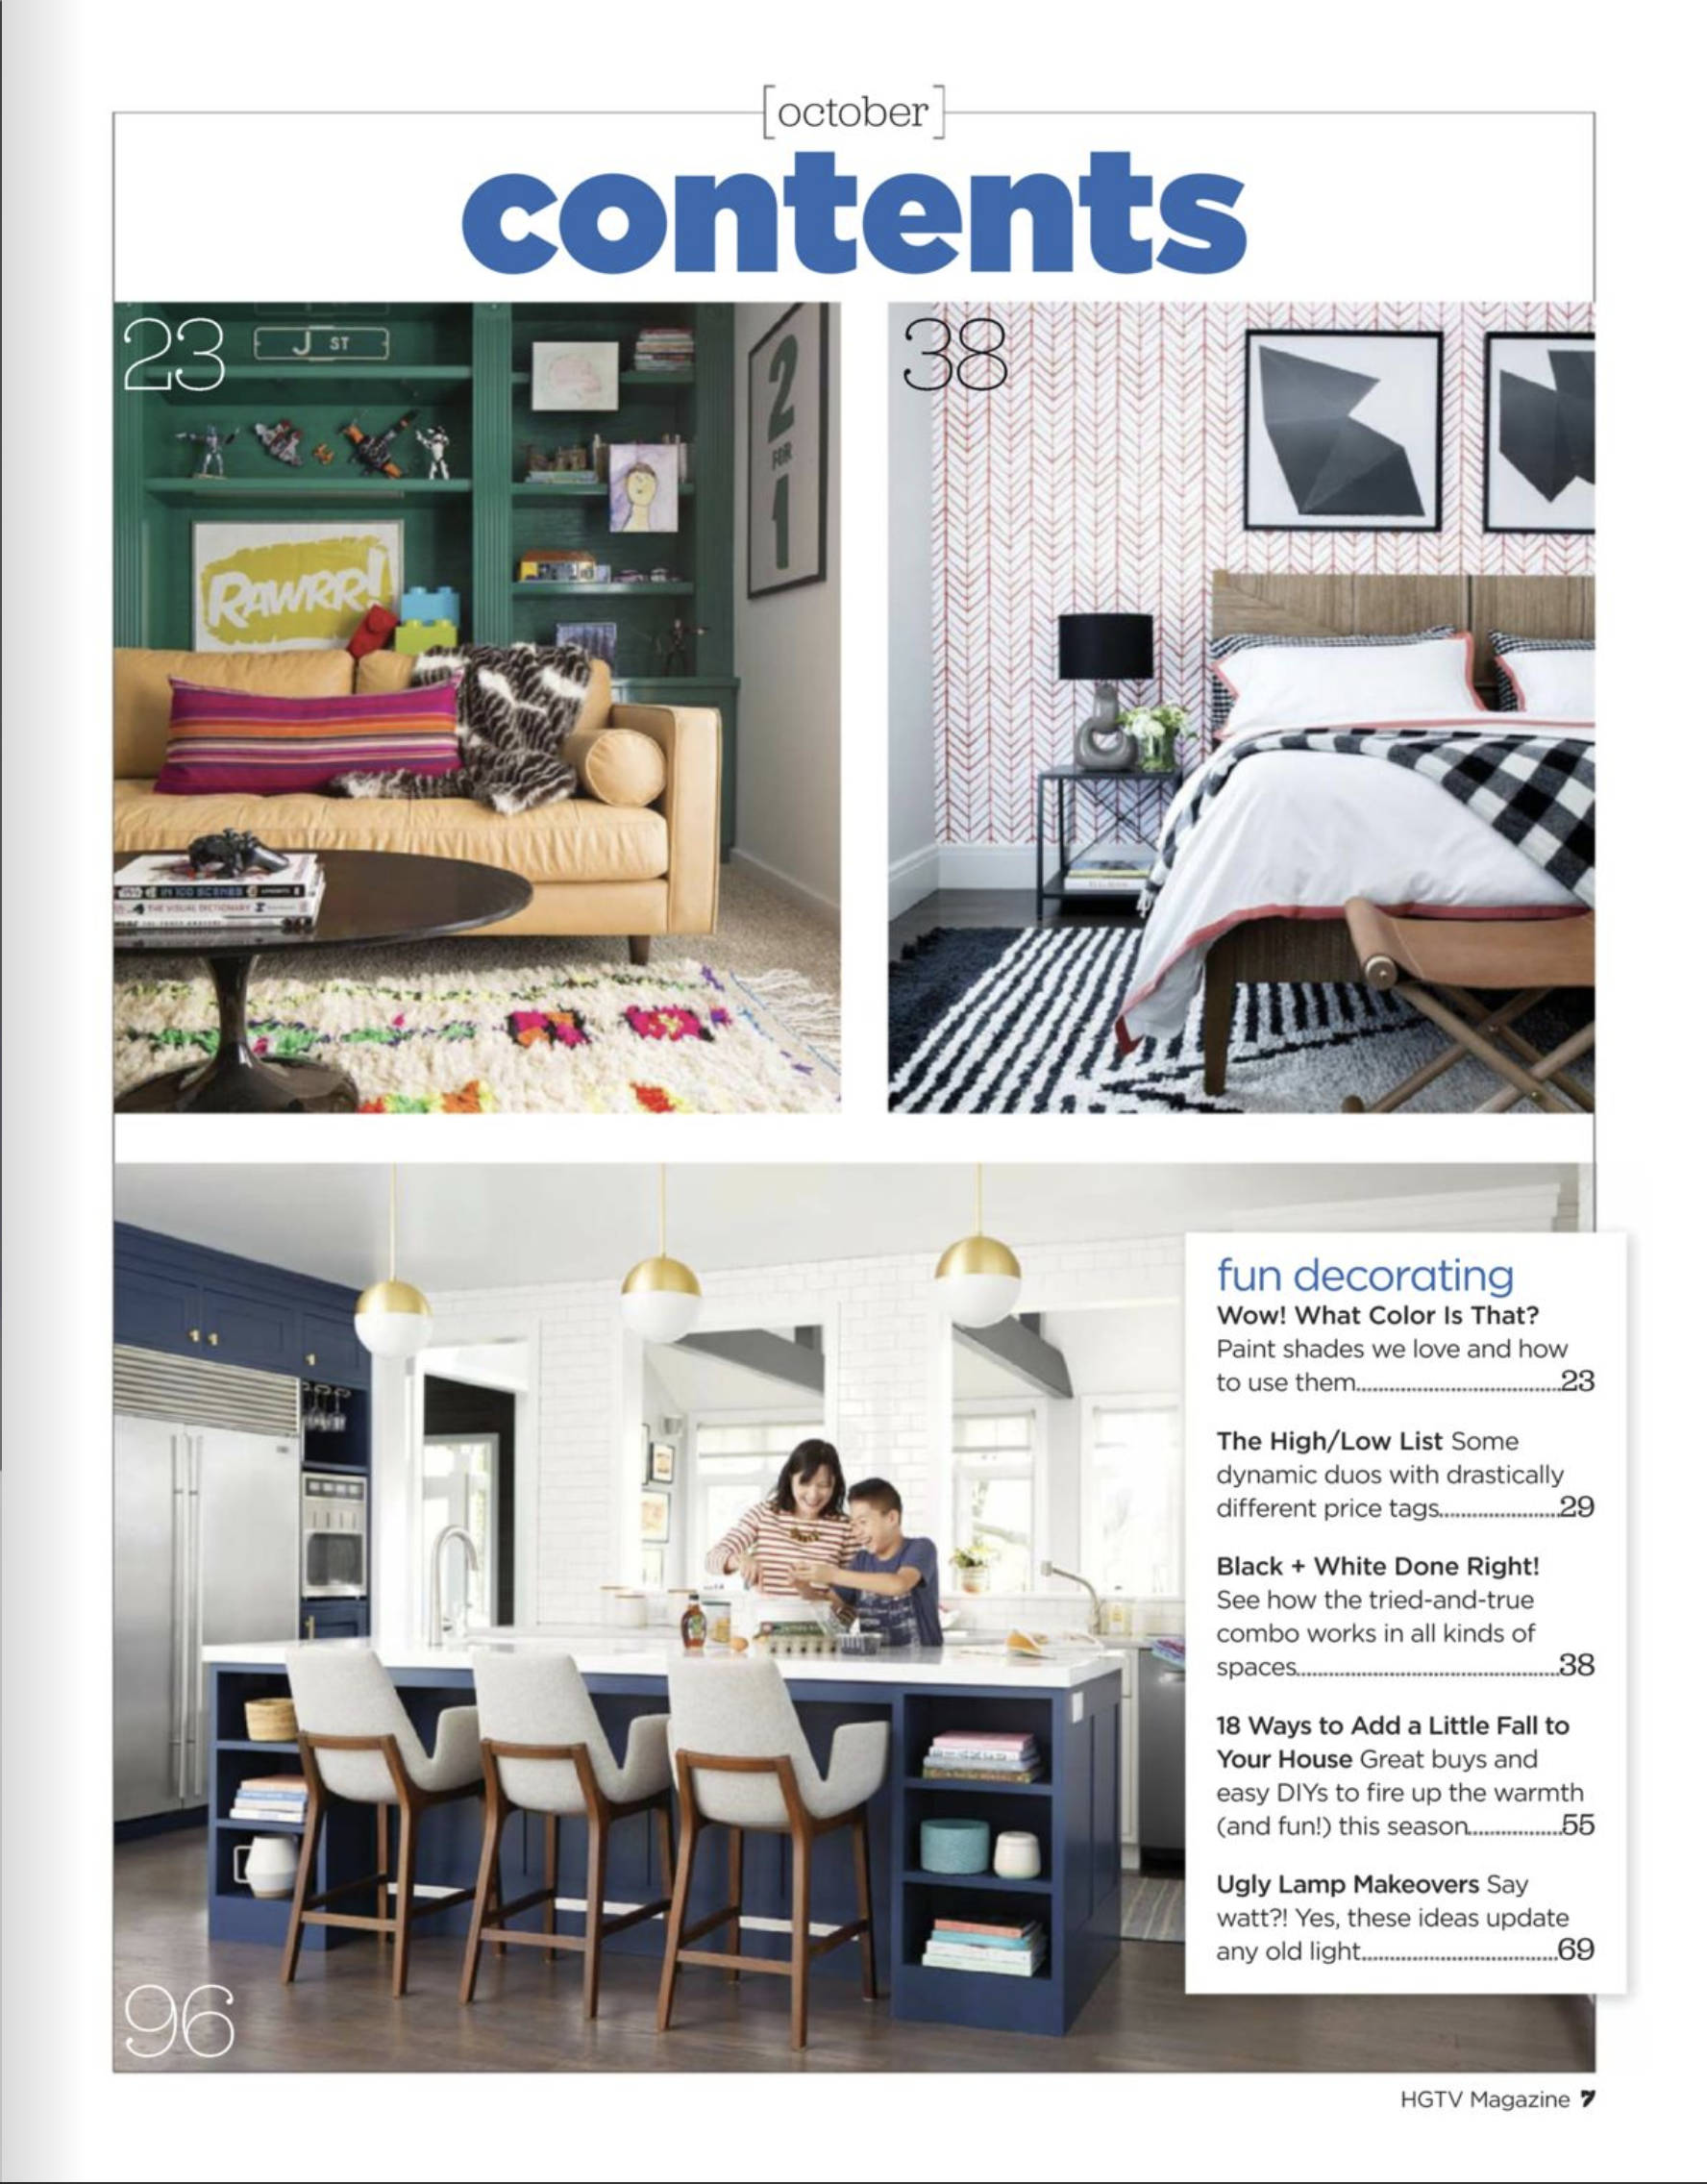 CONTENTS_HGTV_2018.png